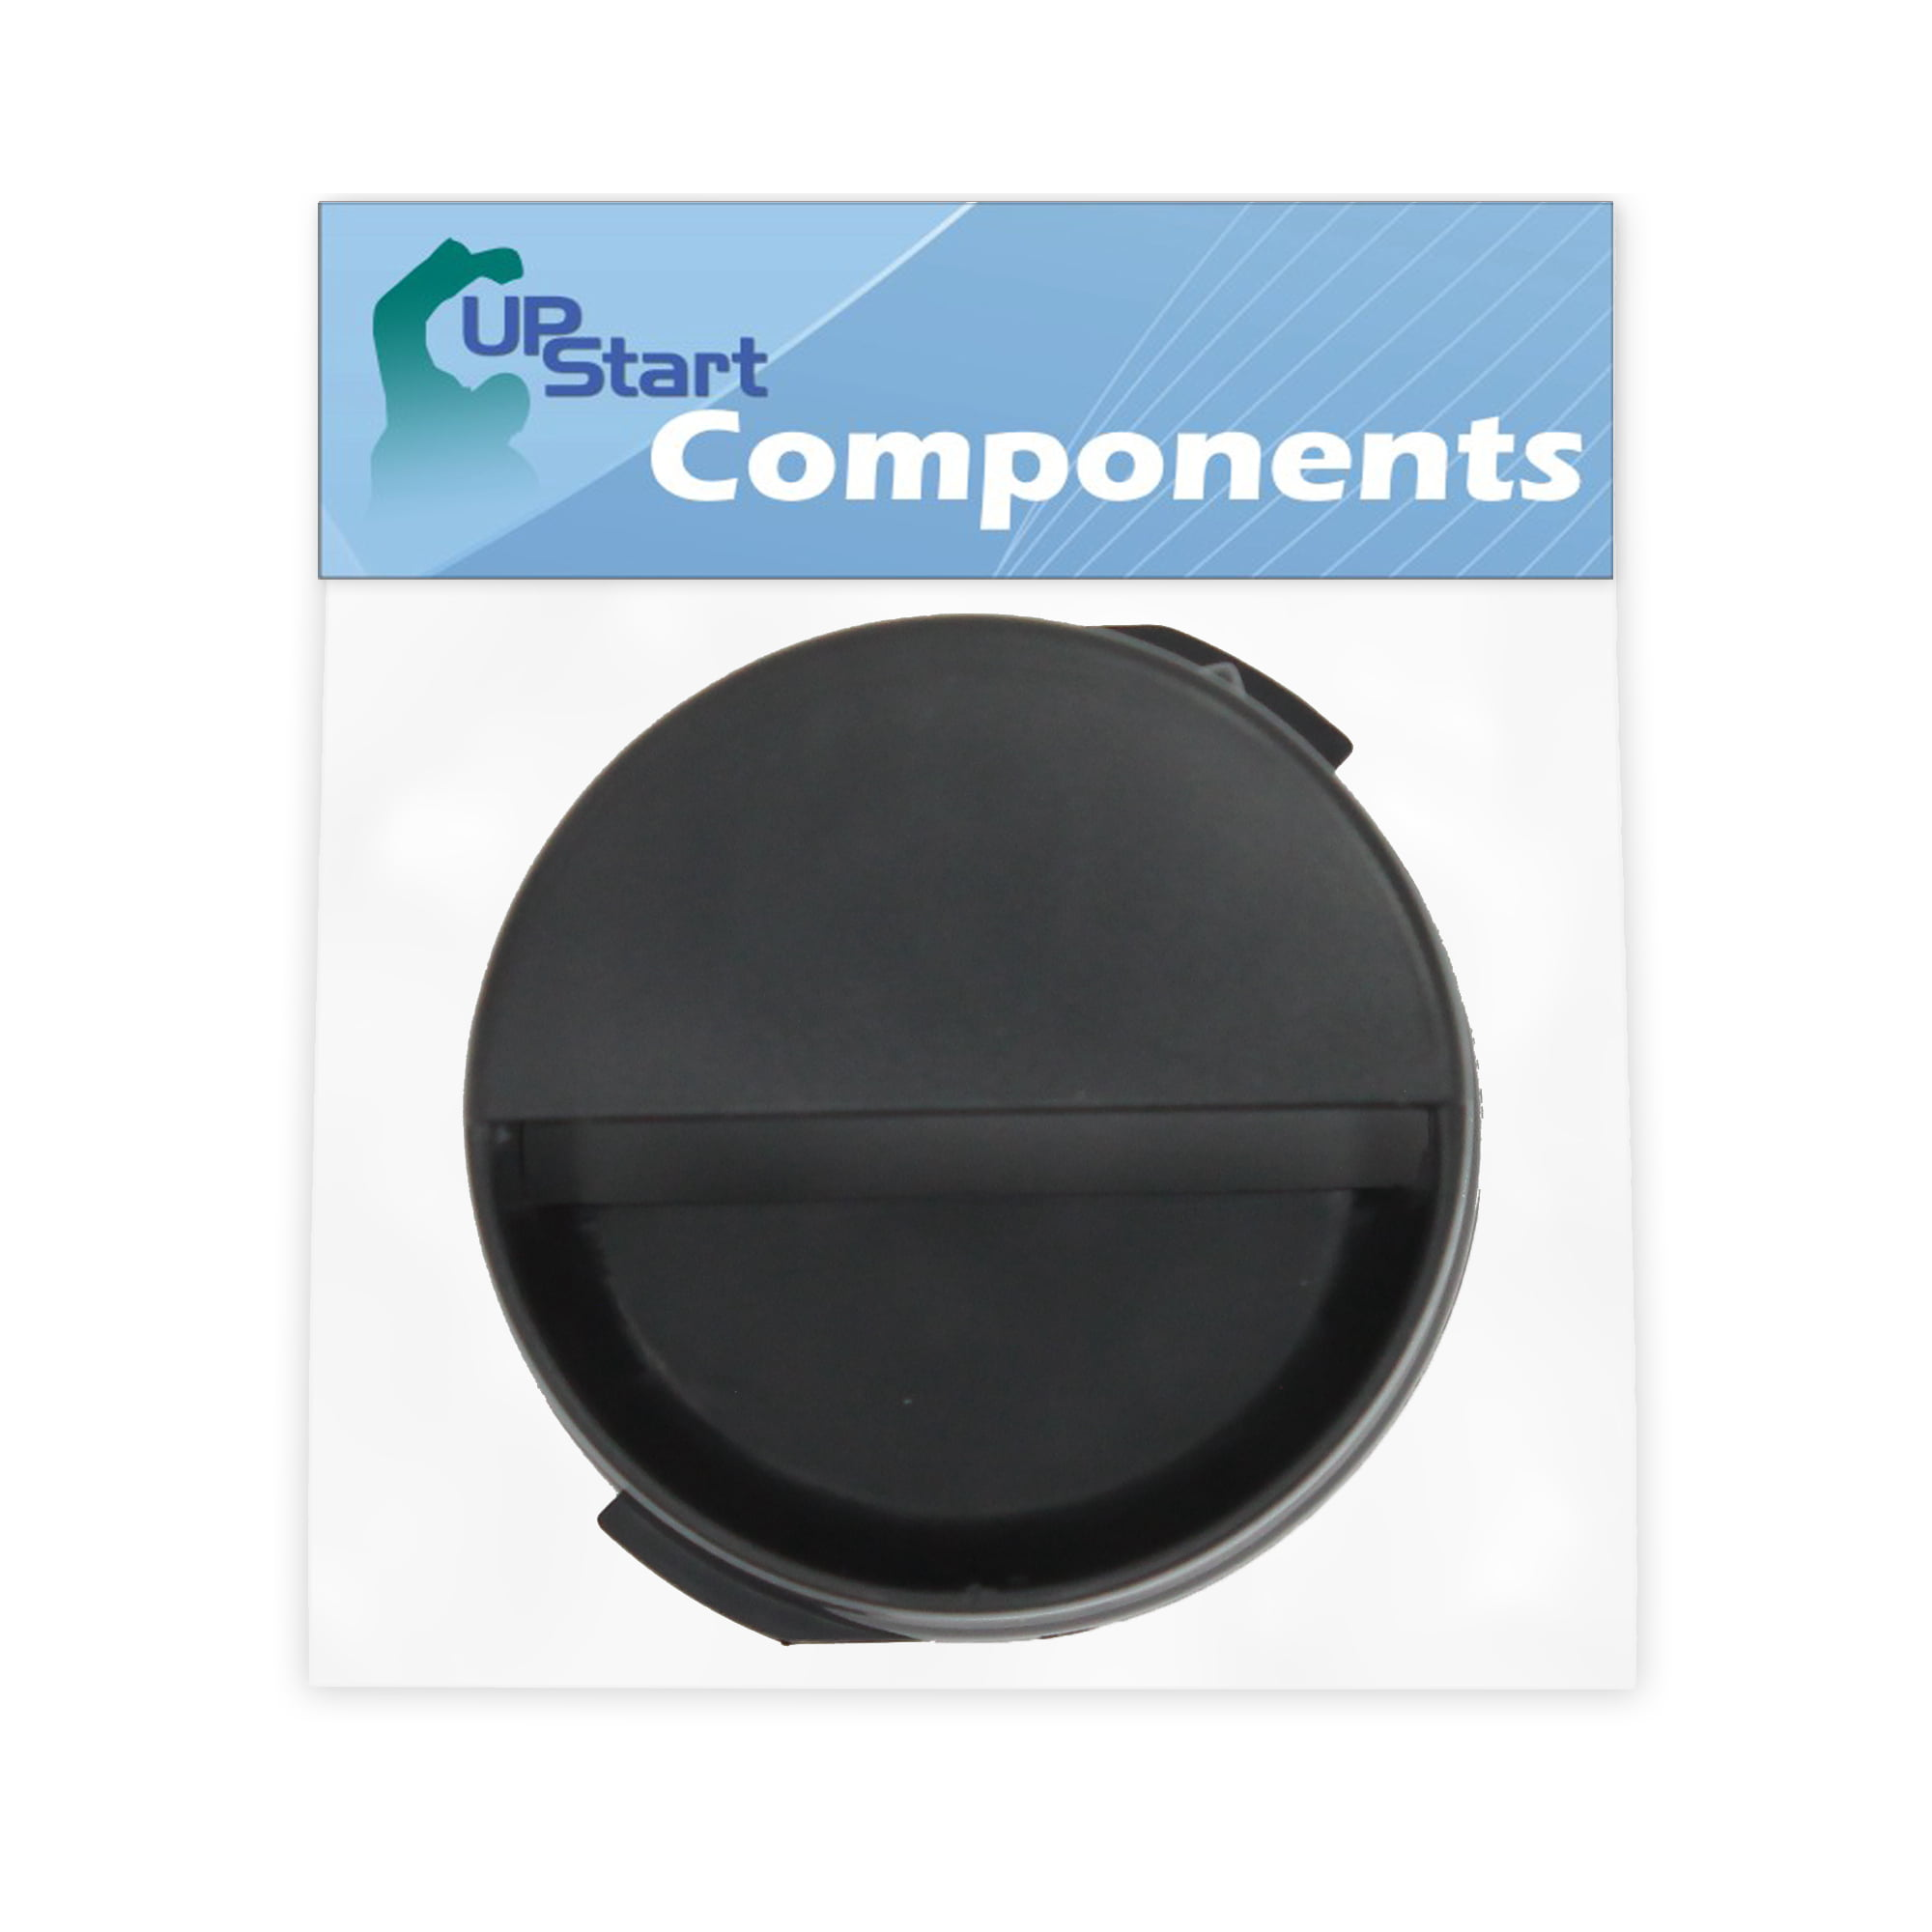 2260502b Refrigerator Water Filter Cap Replacement For Kitchenaid Ksss48ftx04 Refrigerator Compatible With Wp2260518b Black Water Filter Cap